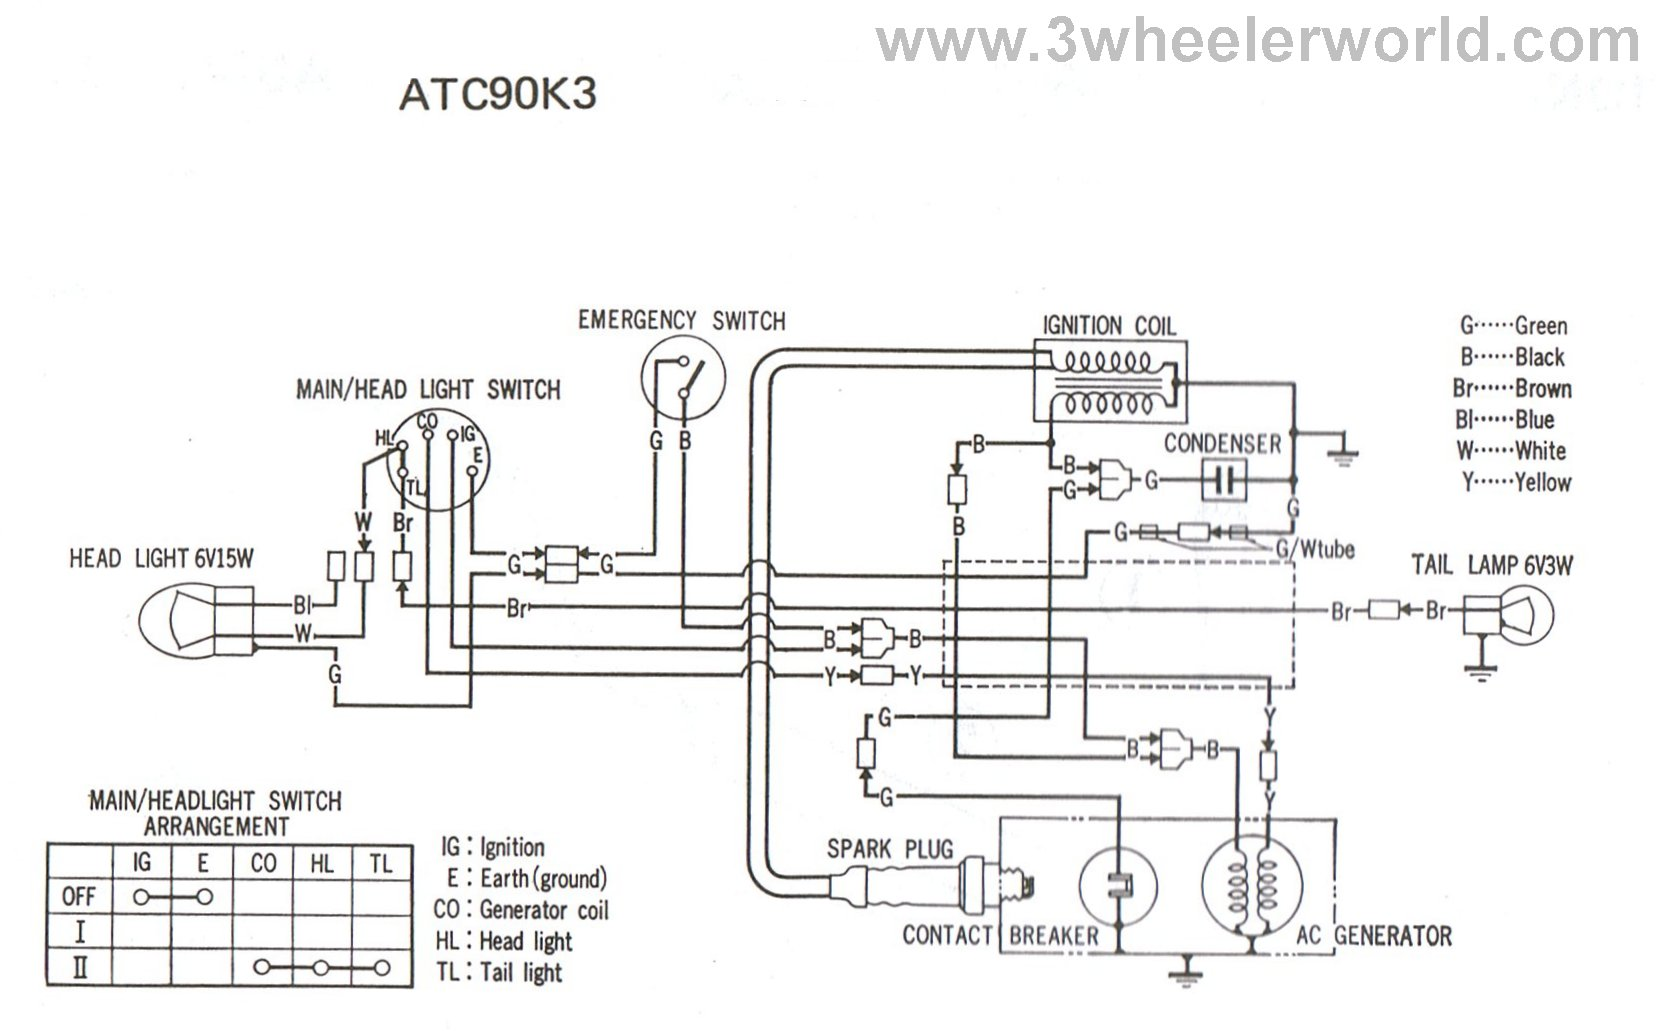 ATC90K3HM 3 wheeler world tech help honda wiring diagrams 2006 arctic cat 400 4x4 wiring diagram at gsmx.co